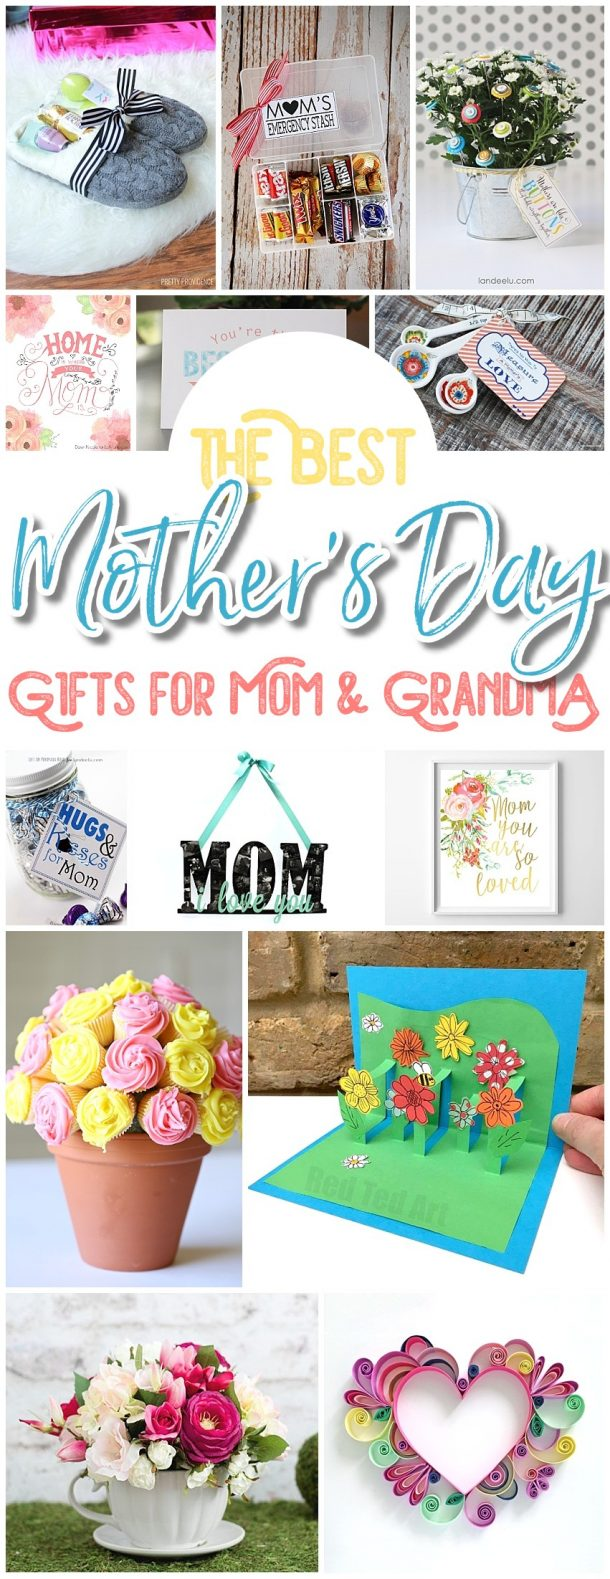 The BEST Easy DIY Mother's Day Gifts and Treats Ideas – Holiday Craft Activity Projects, Free Printables, Kids Paper Crafts and Favorite Brunch Desserts Recipes for Moms and Grandmas - Dreaming in DIY #mothersday #mothersdaygiftideas #mothersdaygifts #mothersdaygiftbasket #diymothersday #diymothersdaygifts #giftbaskets #bakinggiftbasket